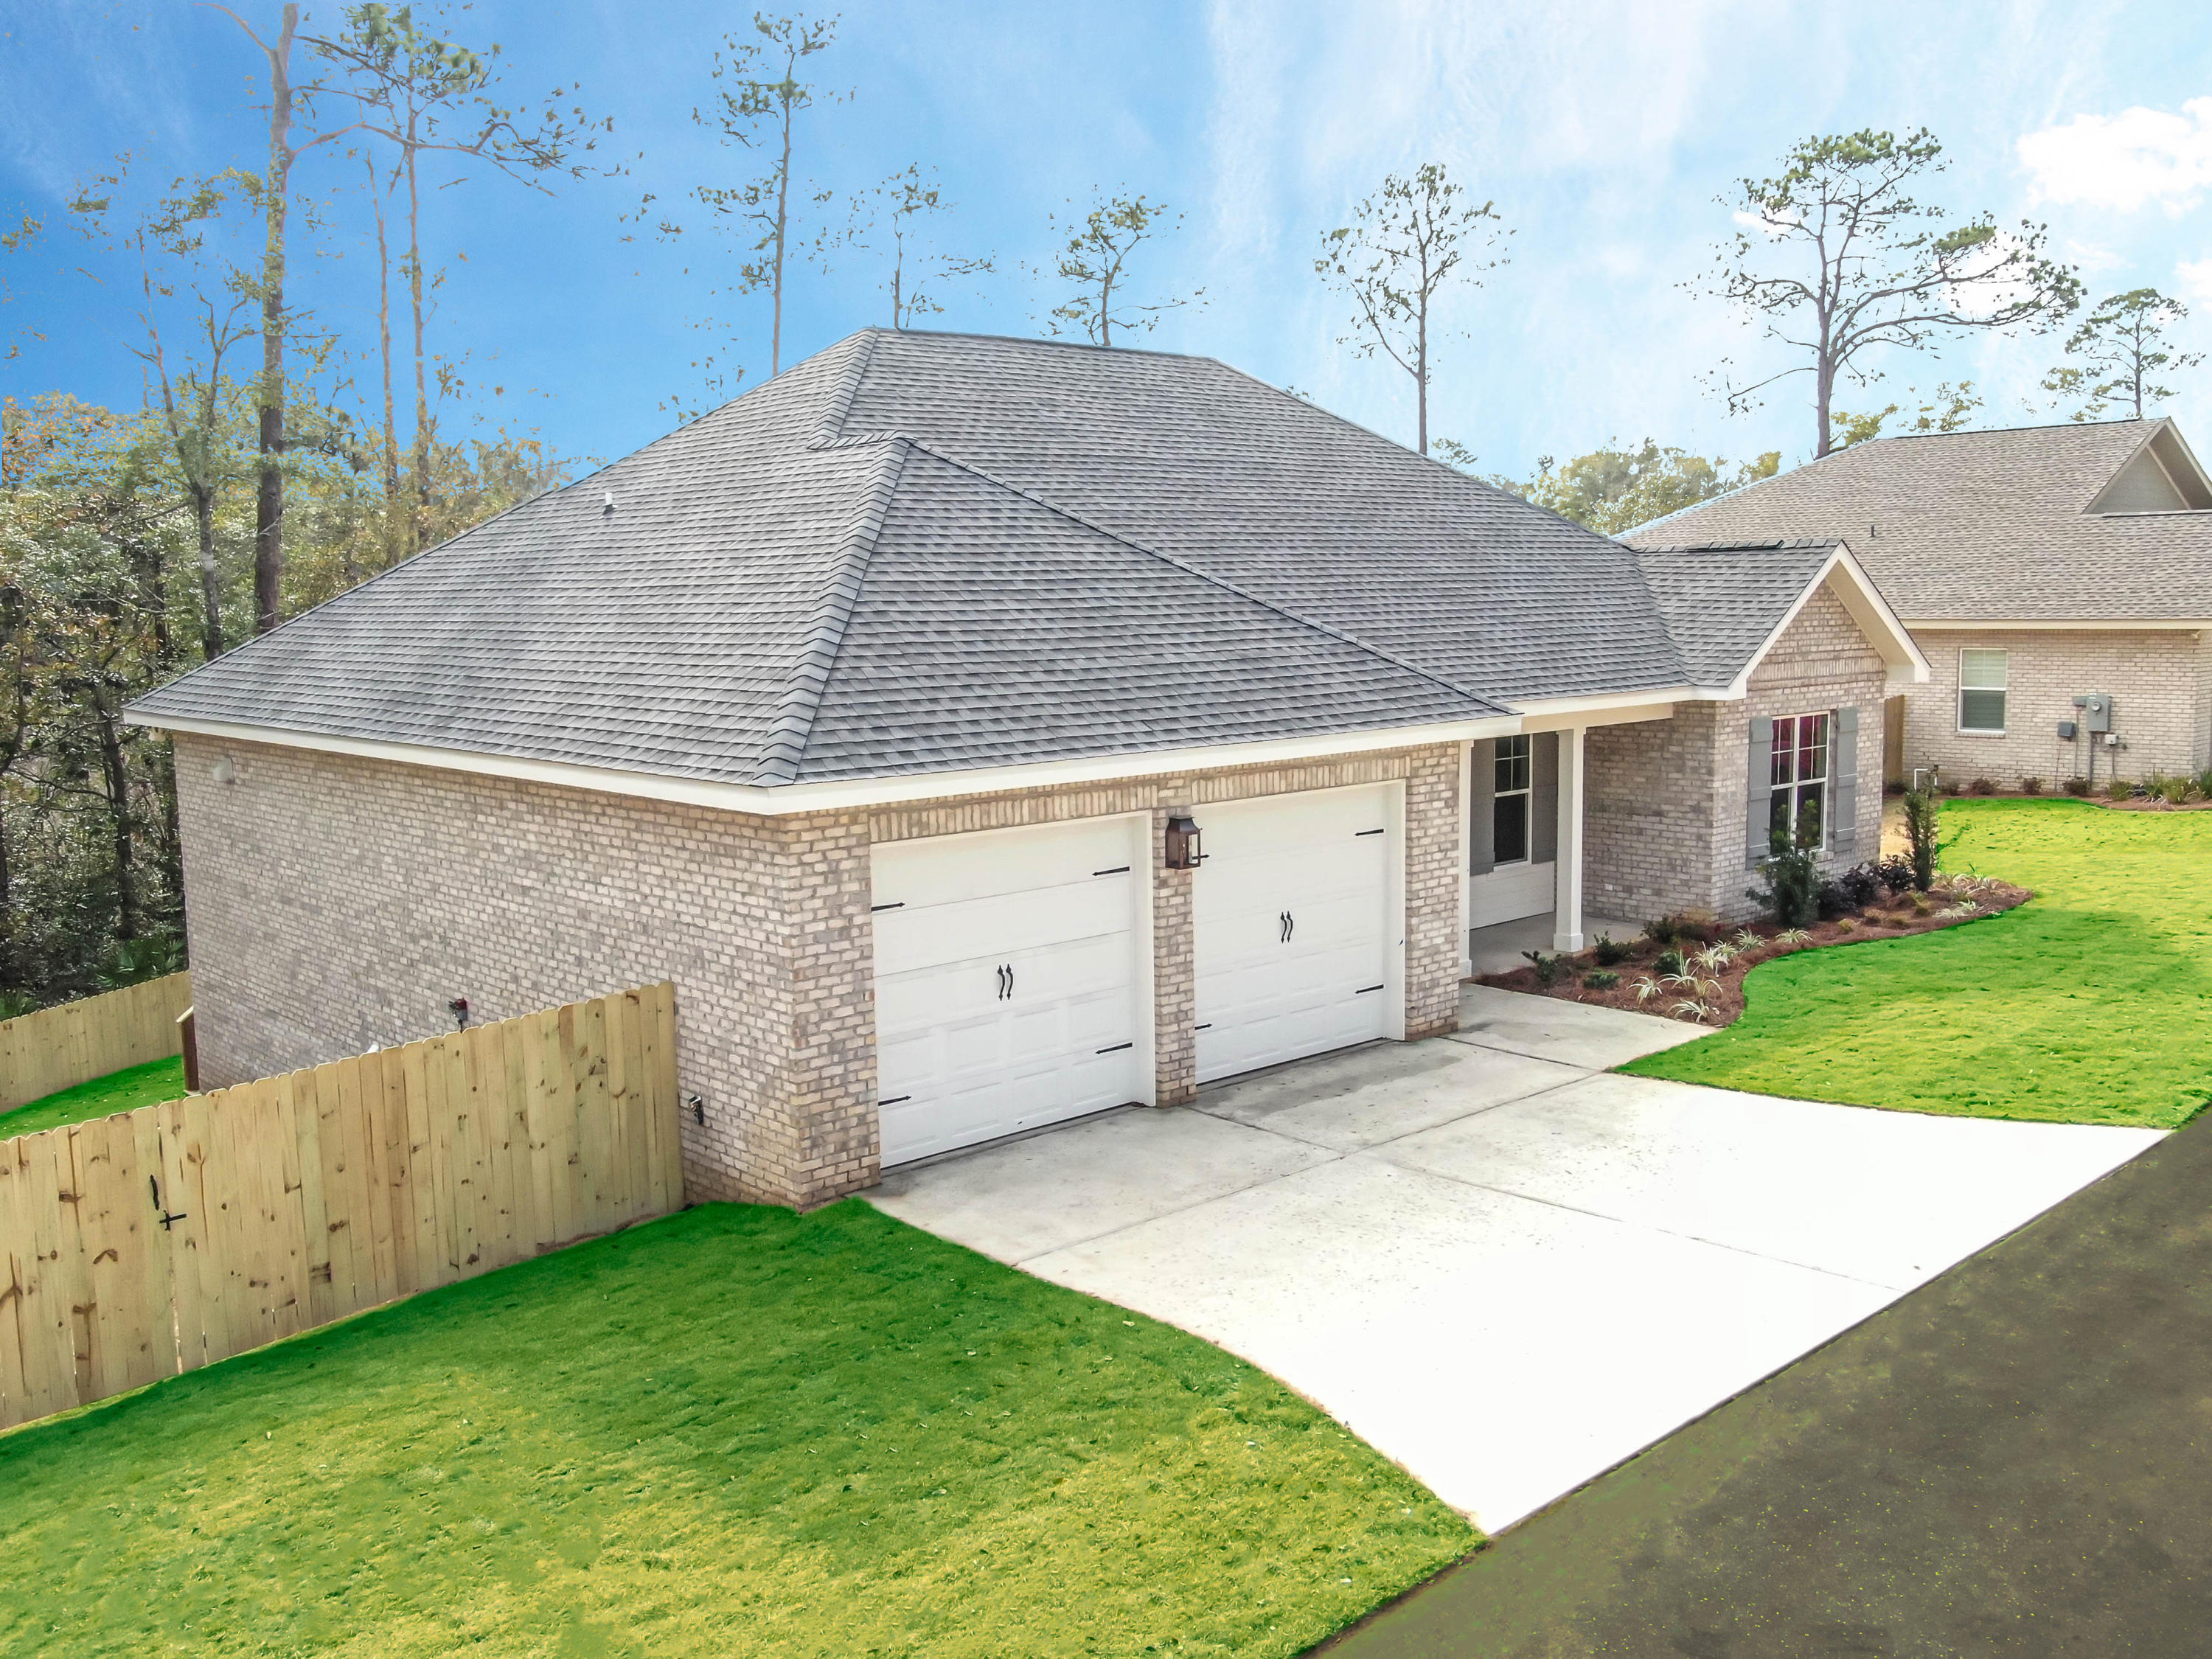 New Construction home is the last of three in this boutique neighborhood.  If location is important, here is your new build.  Just a few blocks from Niceville High School, shopping, and restaurants.This Craftsman style home with 4 bedrooms and 3 full baths will sit at the end of the road on a large private lot with room for optional pool, batting cage, or outdoor kitchen.CoPilot Properties is the VA approved builder and they build beautiful homes.  The oversized lot provides for a quiet residence with old pines and a natural area on two sides.Pictures are from previous build to show sample finishes.  Finishes that come standard are engineered hardwood floors throughout, stainless appliances with gas, shiplap accent walls, 9' and 10' ceilings, and high end finishes throughout.